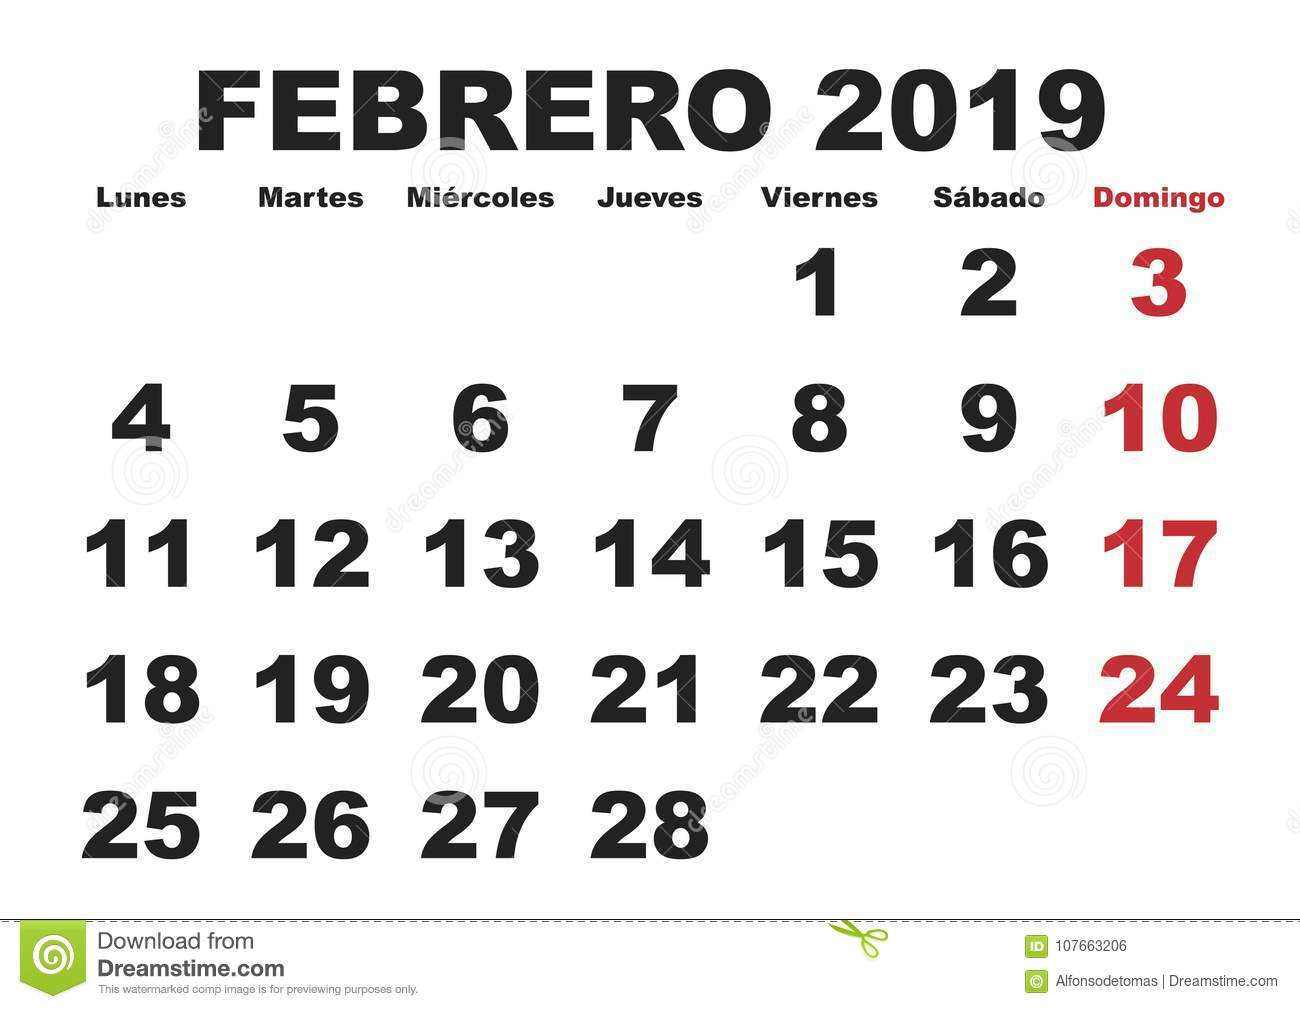 Spanish February Calendar 2019 Febrero 2019 Wall Calendar Spanish Stock Vector   Illustration of